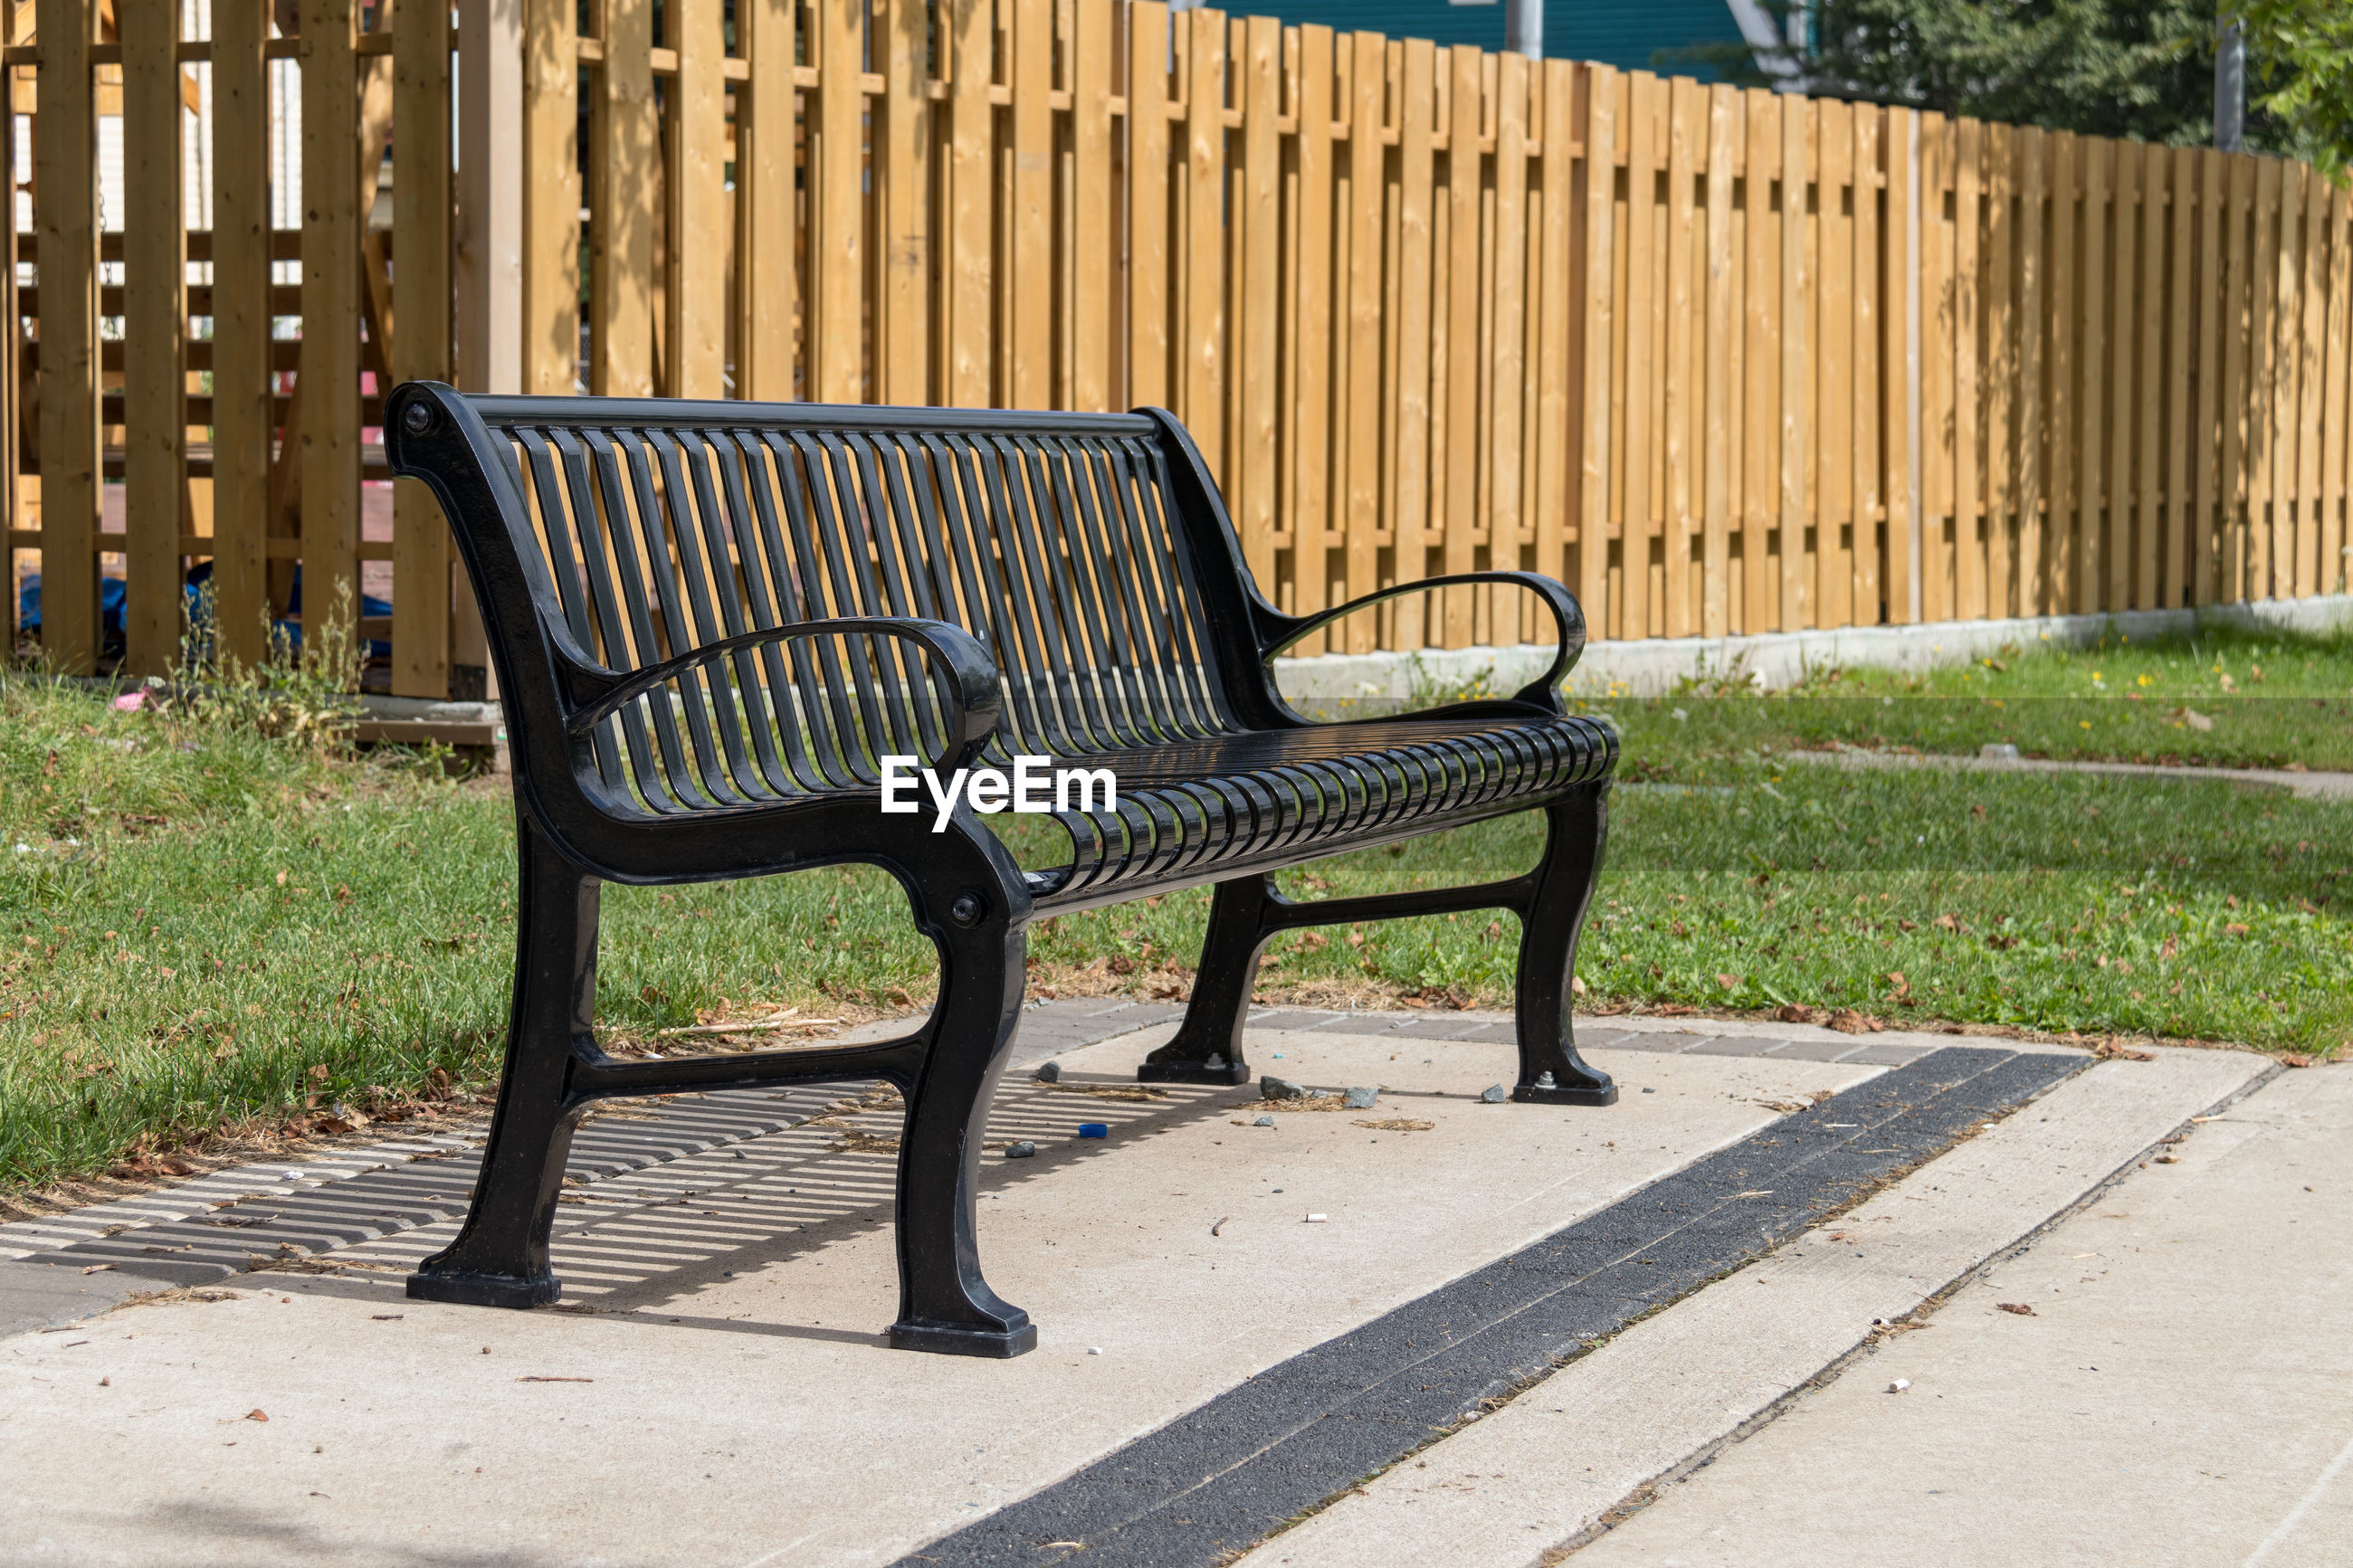 EMPTY BENCHES ON PARK BENCH